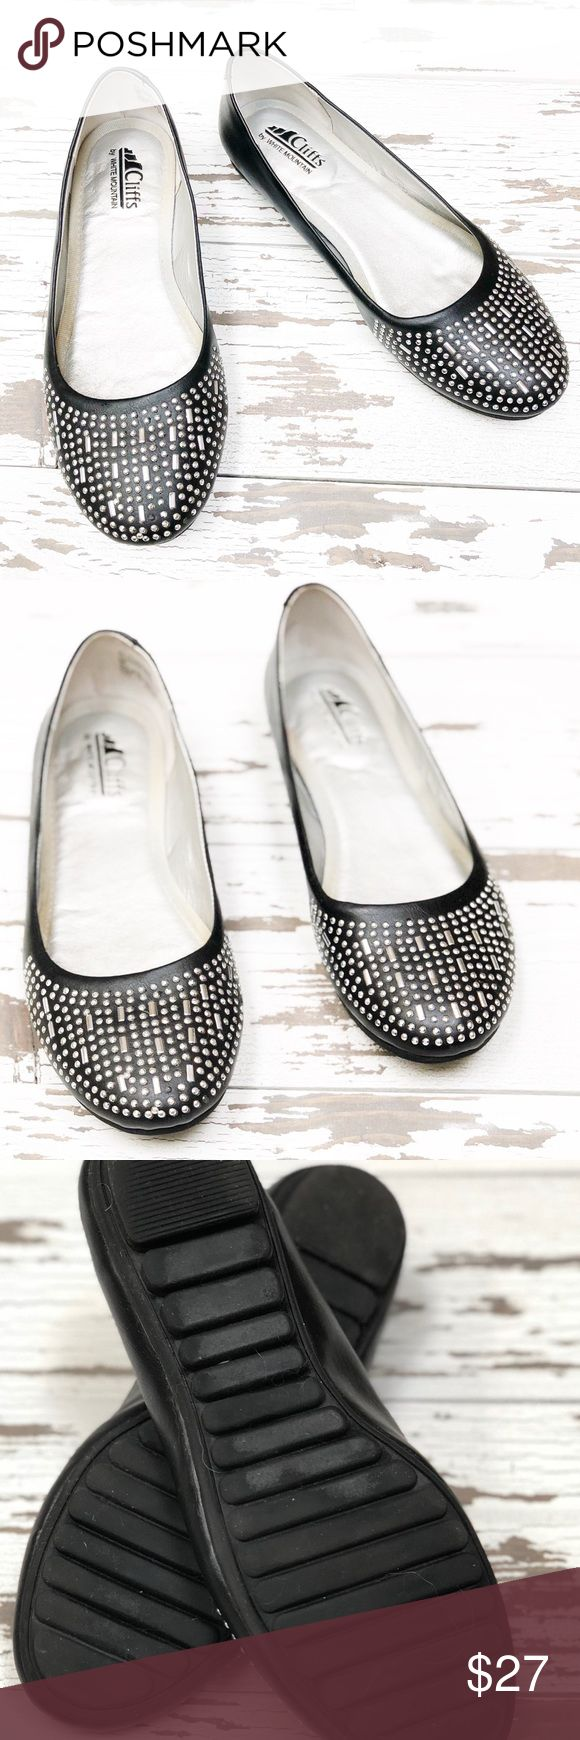 ⭐️ Like New ⭐️ CLIFFS Metallic Studded Flats Shoes have been gently worn but in like new condition. Size 8 medium and they are made from all man-made materials. The foot bed has lots of cushion. White Mountain Shoes Flats & Loafers